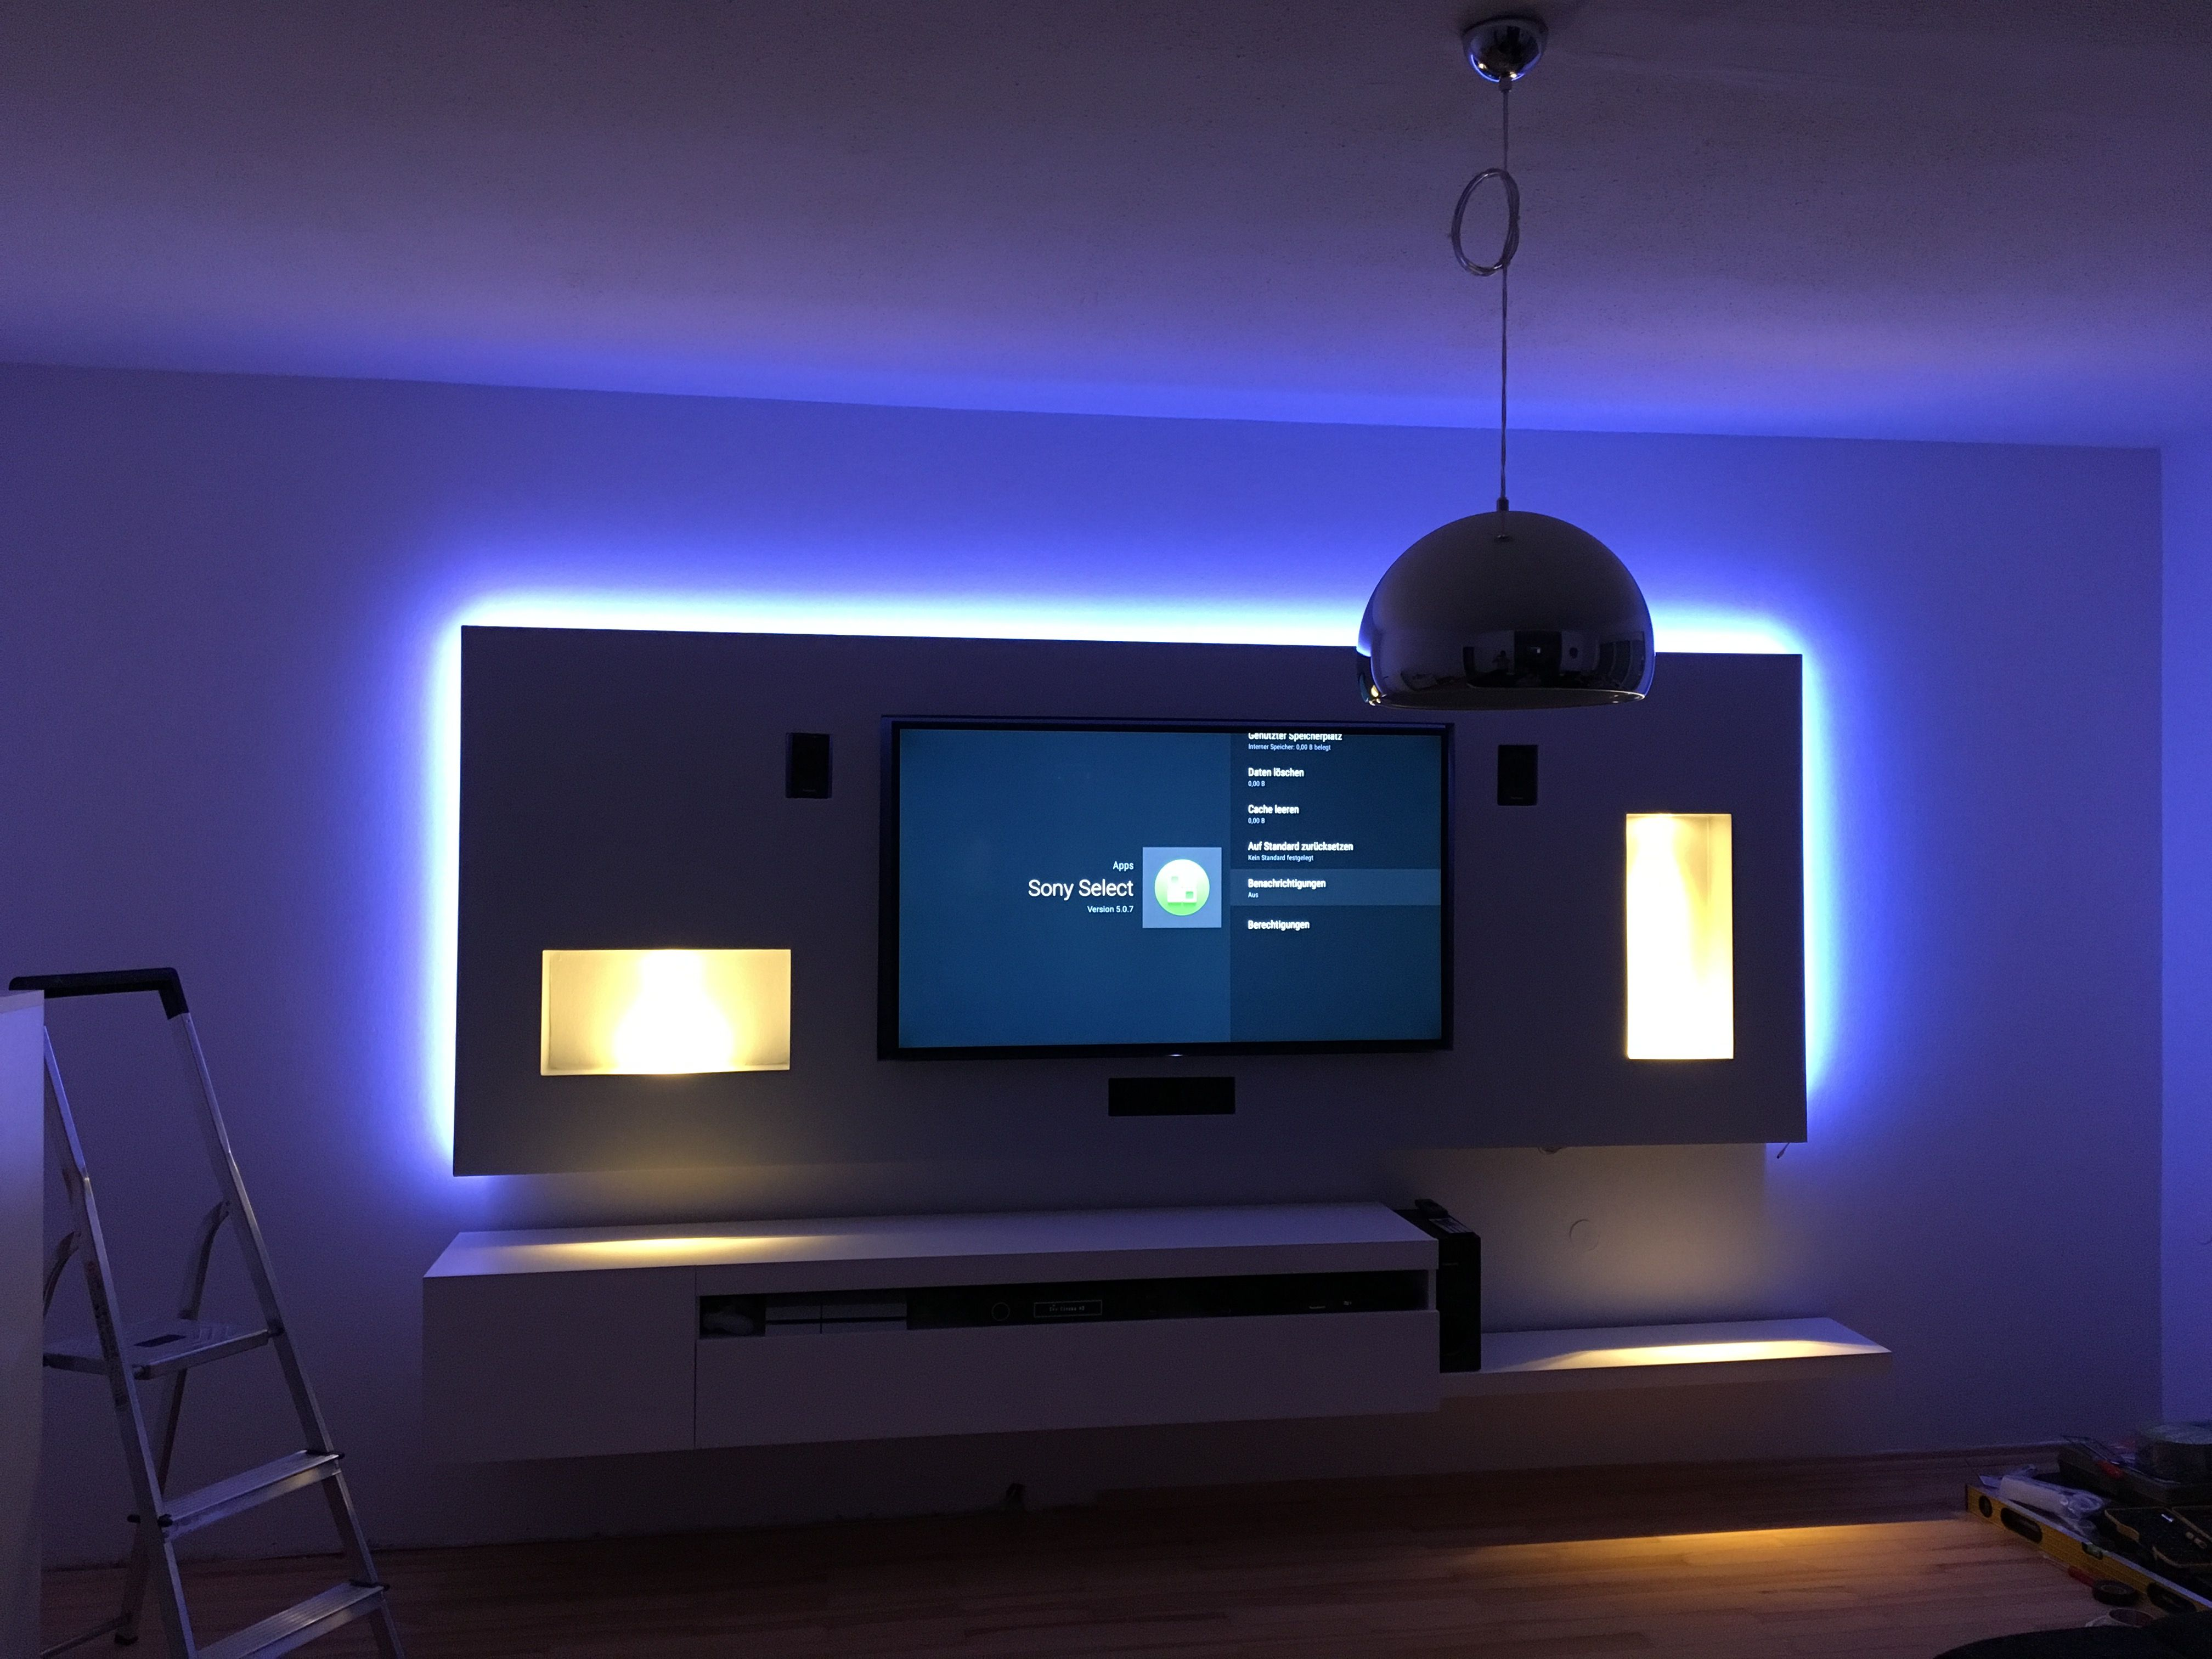 Multimediawand, Wohnwand, Wall, LED, Homecinema,